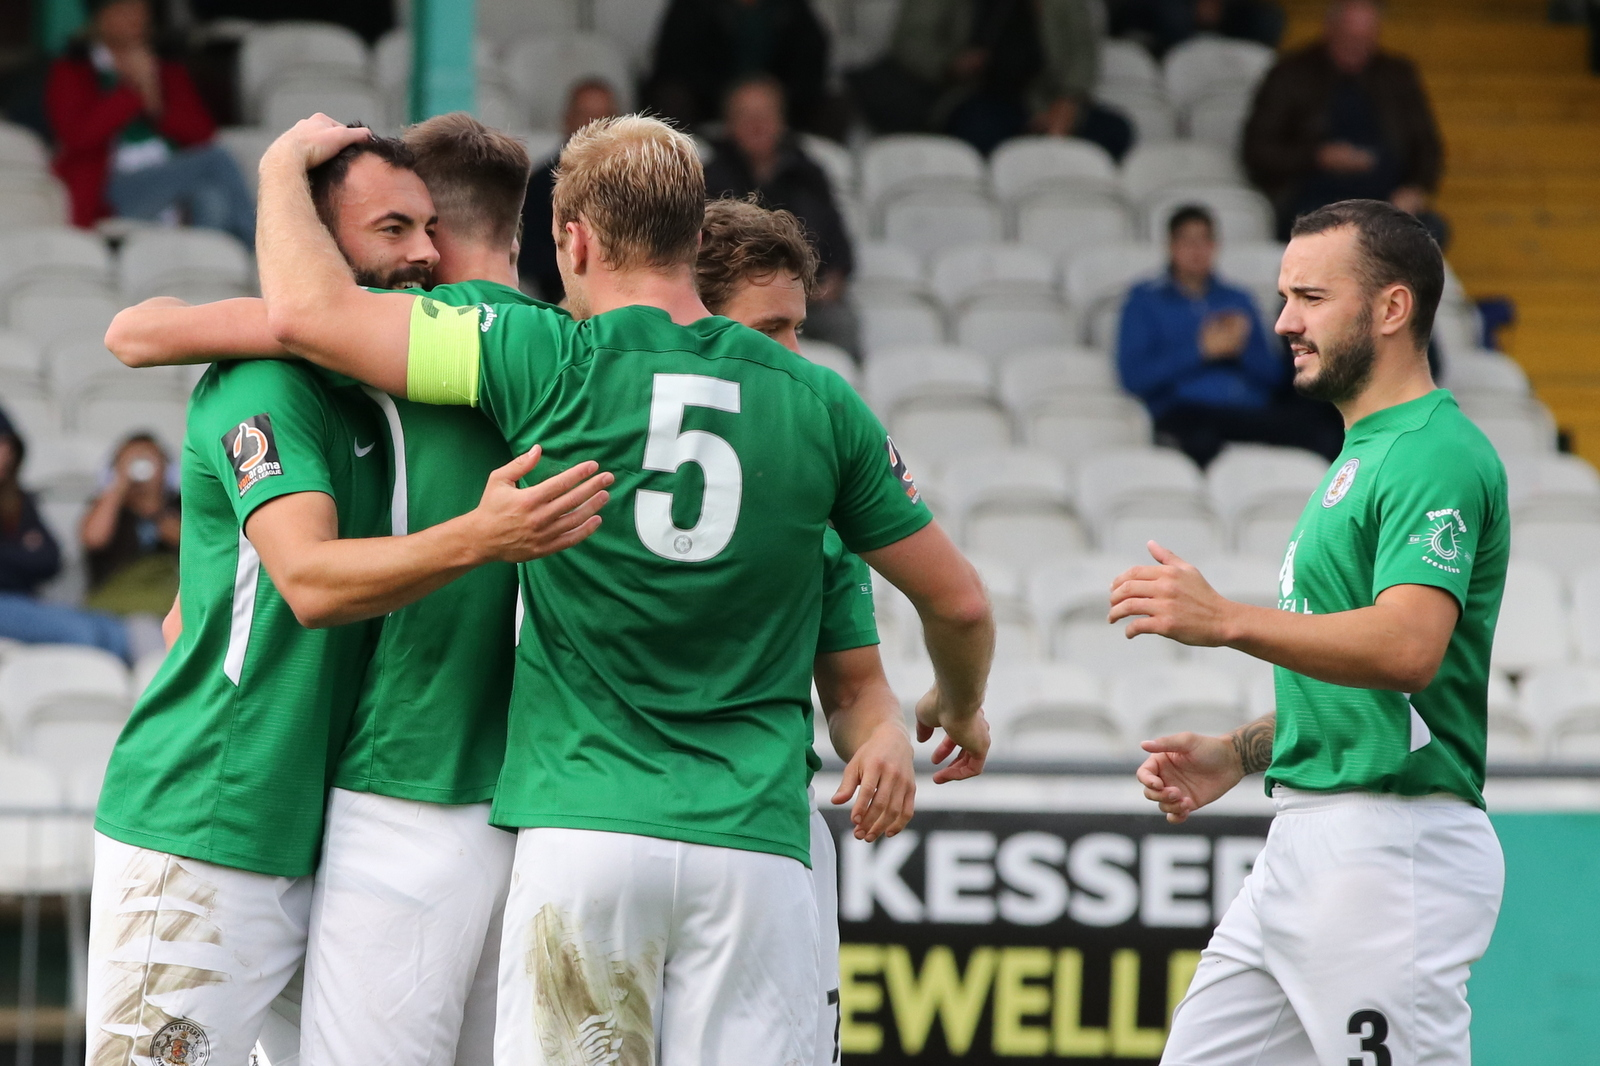 Conor Branson, left, is congratulated on his goal for Avenue in their recent 3-2 home defeat to Altrincham Picture: John Rhodes